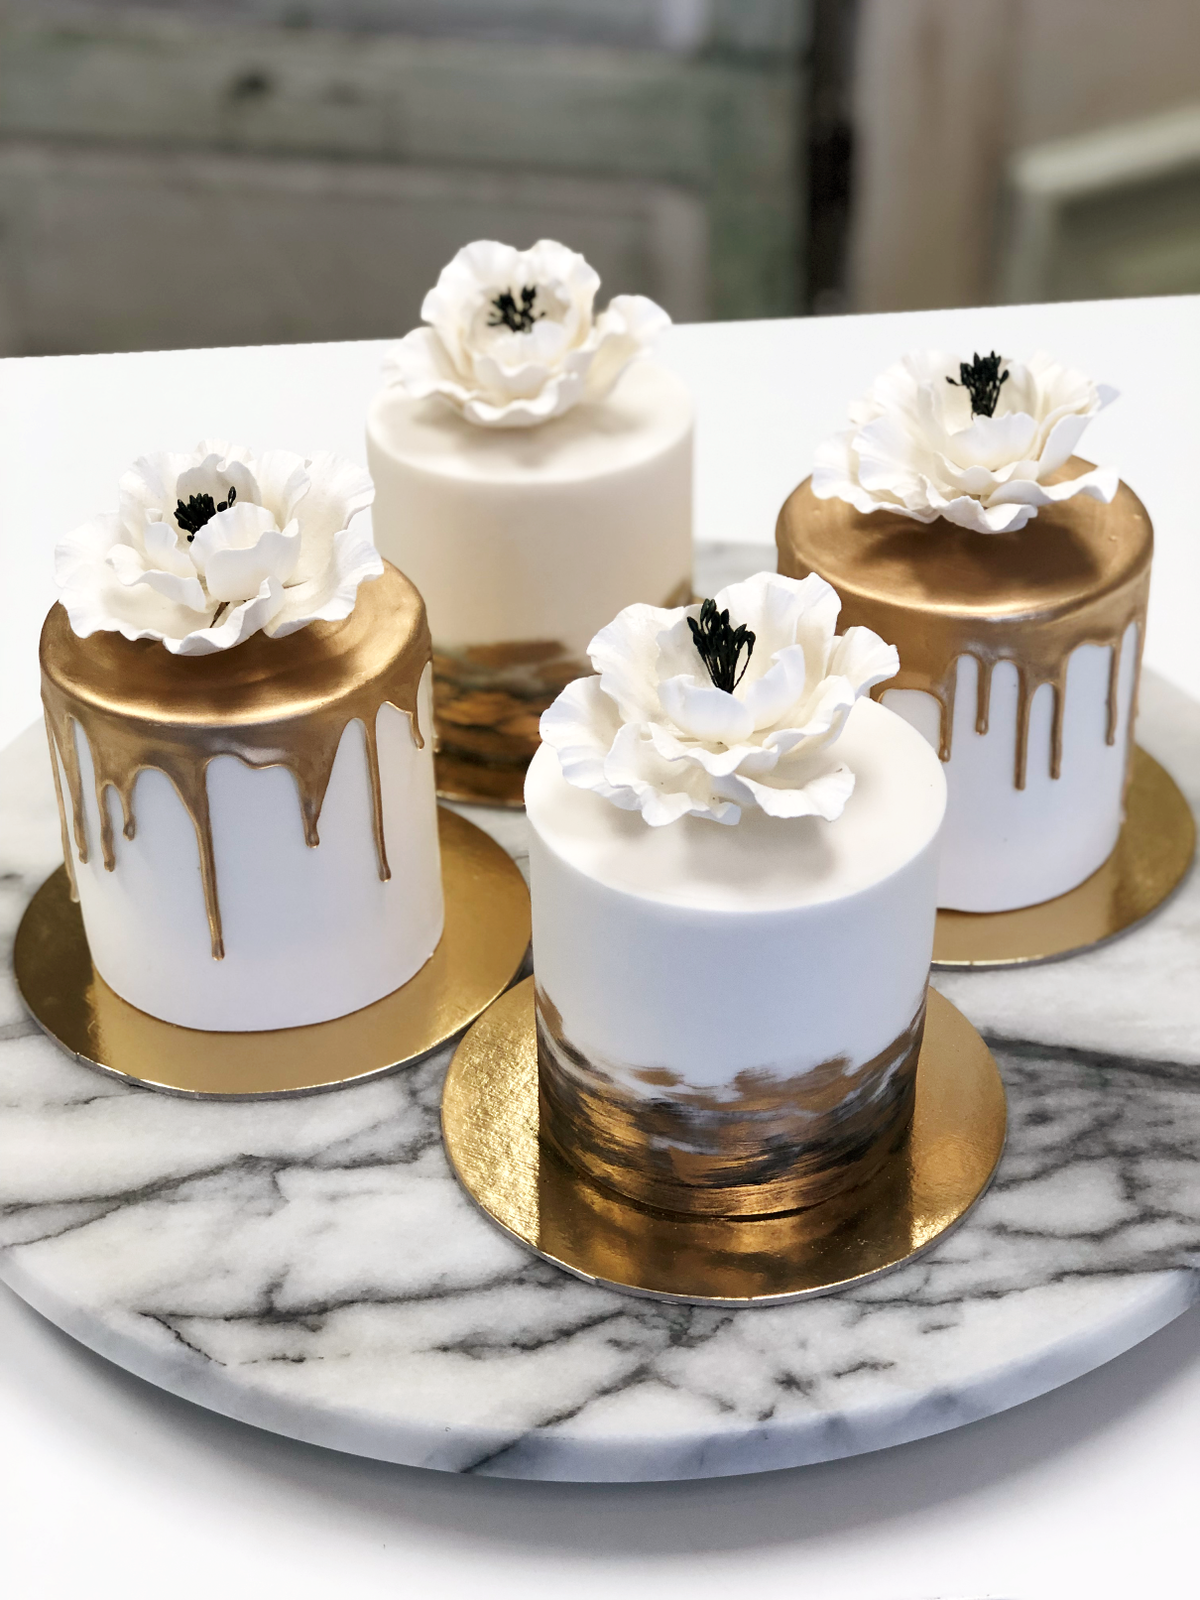 Whippt desserts - Mini Cakes Gold Black and White 2019